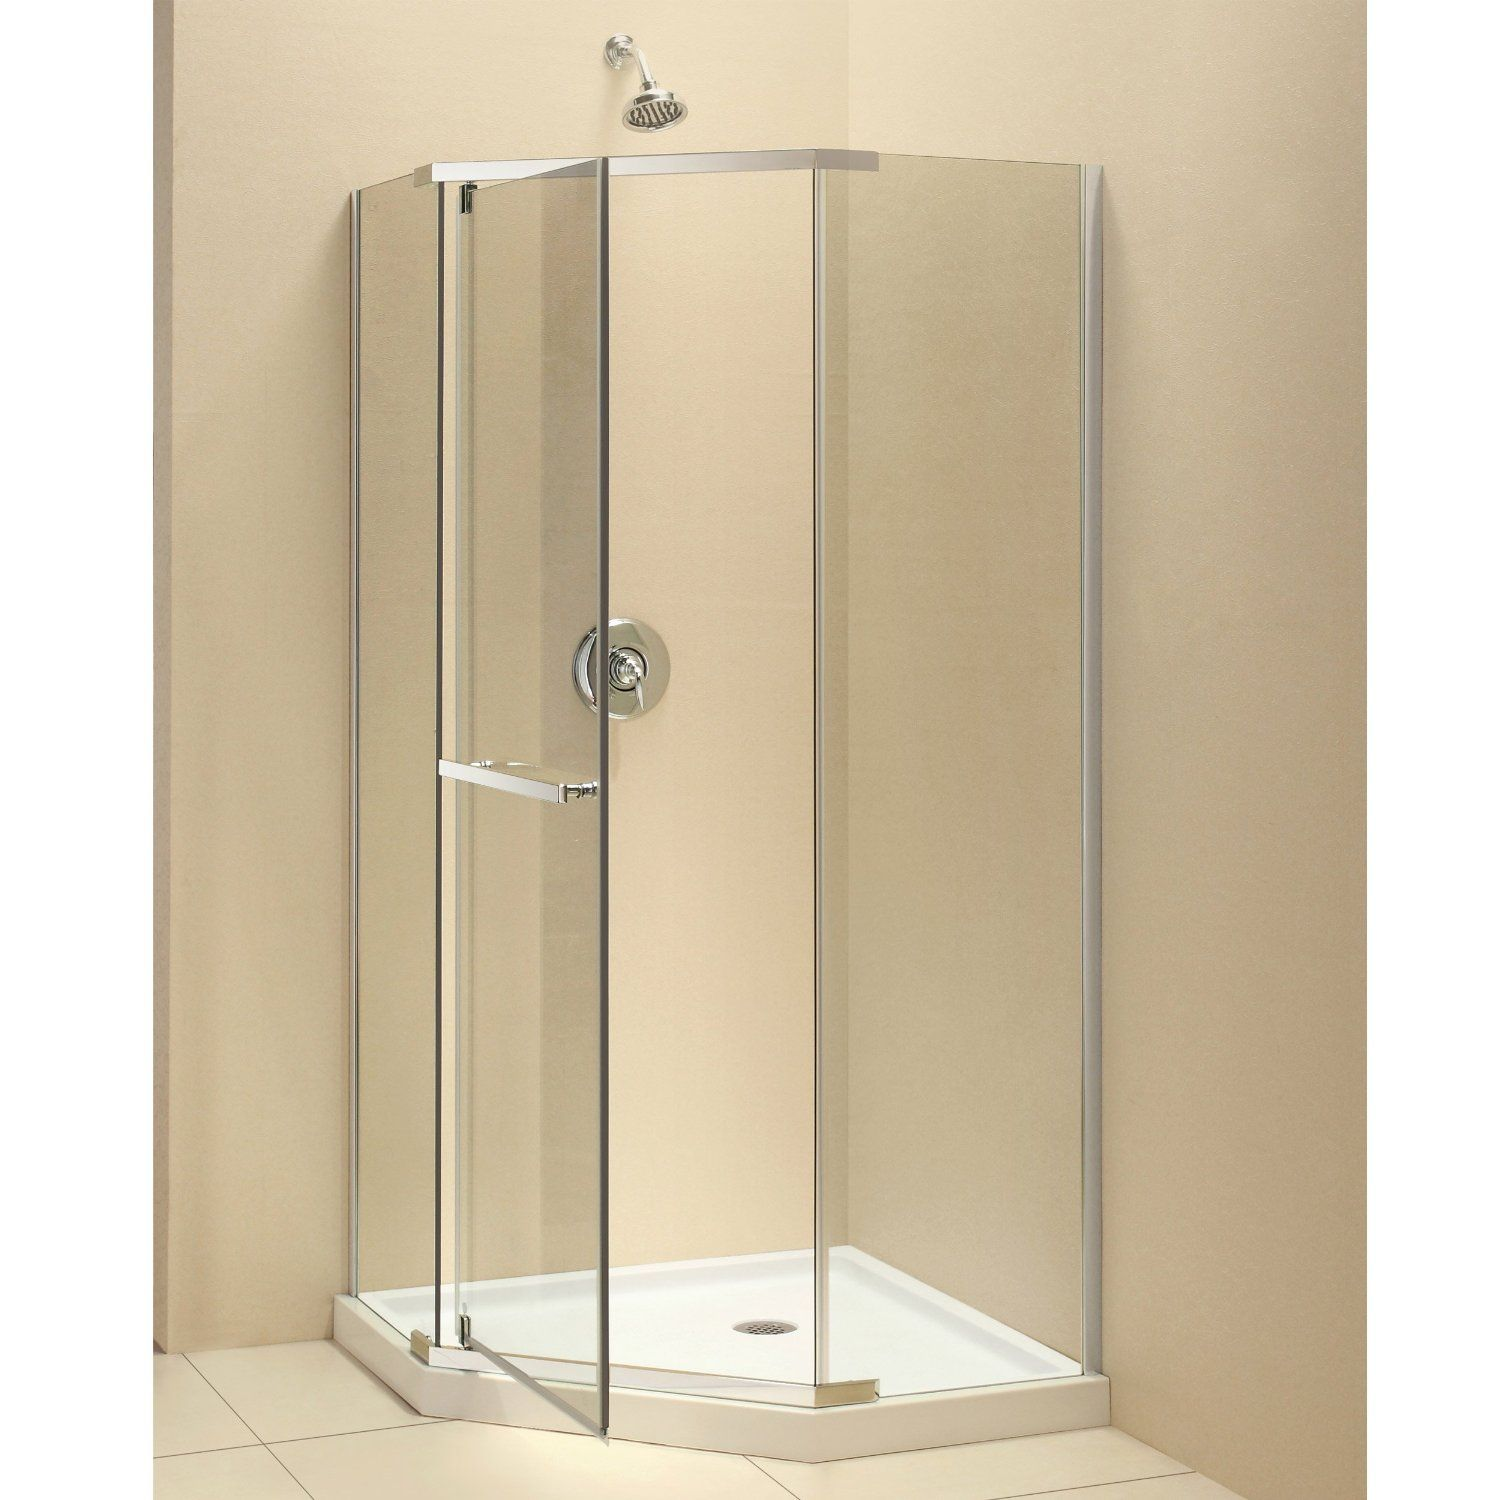 LITTLE BIG LIFE: This shower wall kit looks so awesome! Just elegant ...